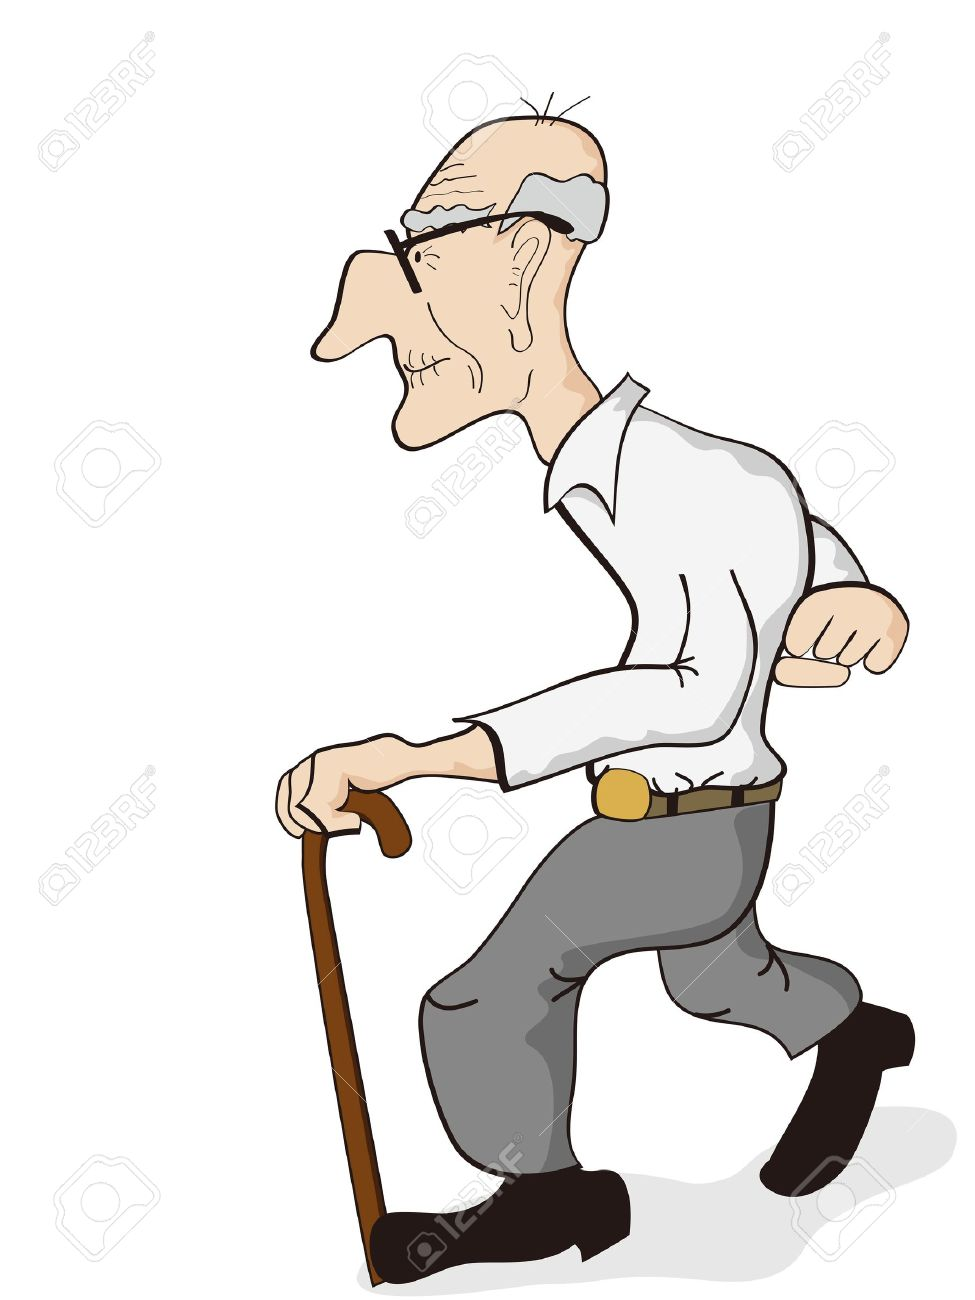 Distinguished old man clipart.